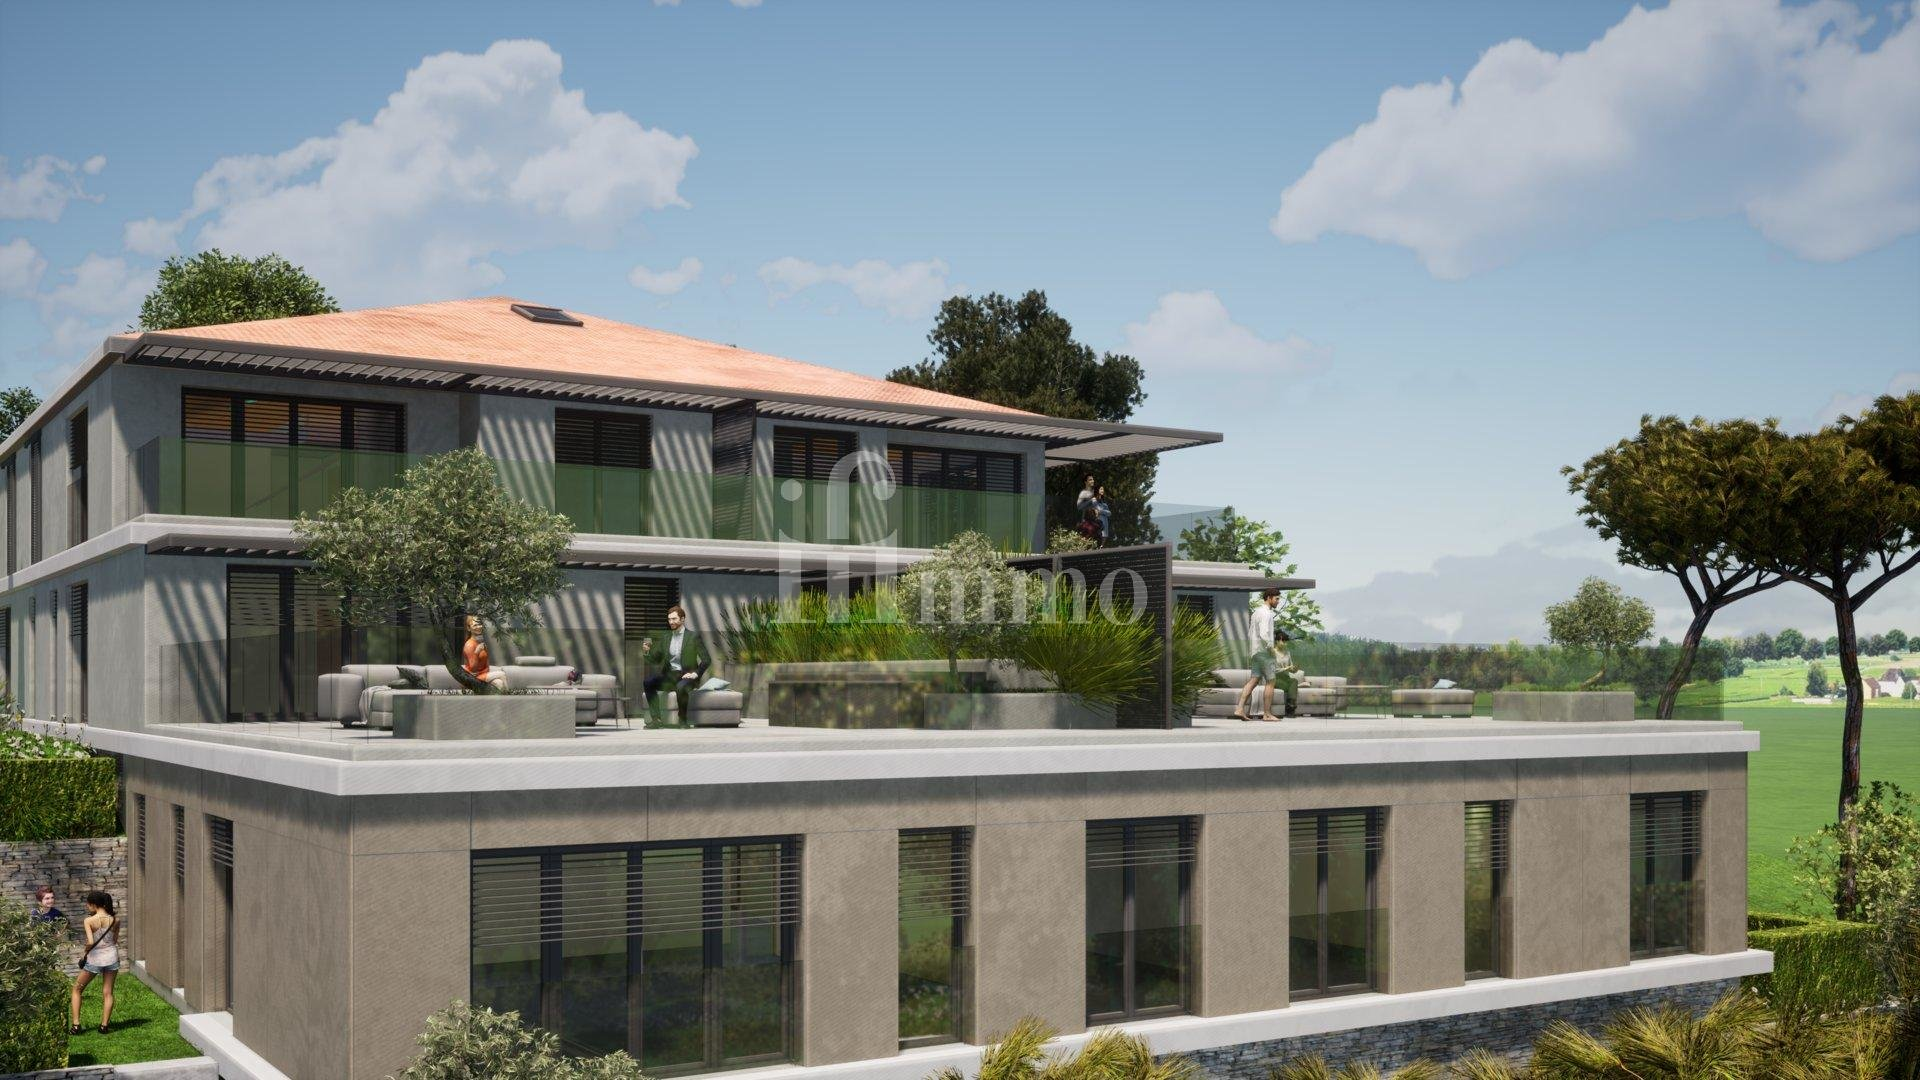 F4 New Residence in Ste Maxime